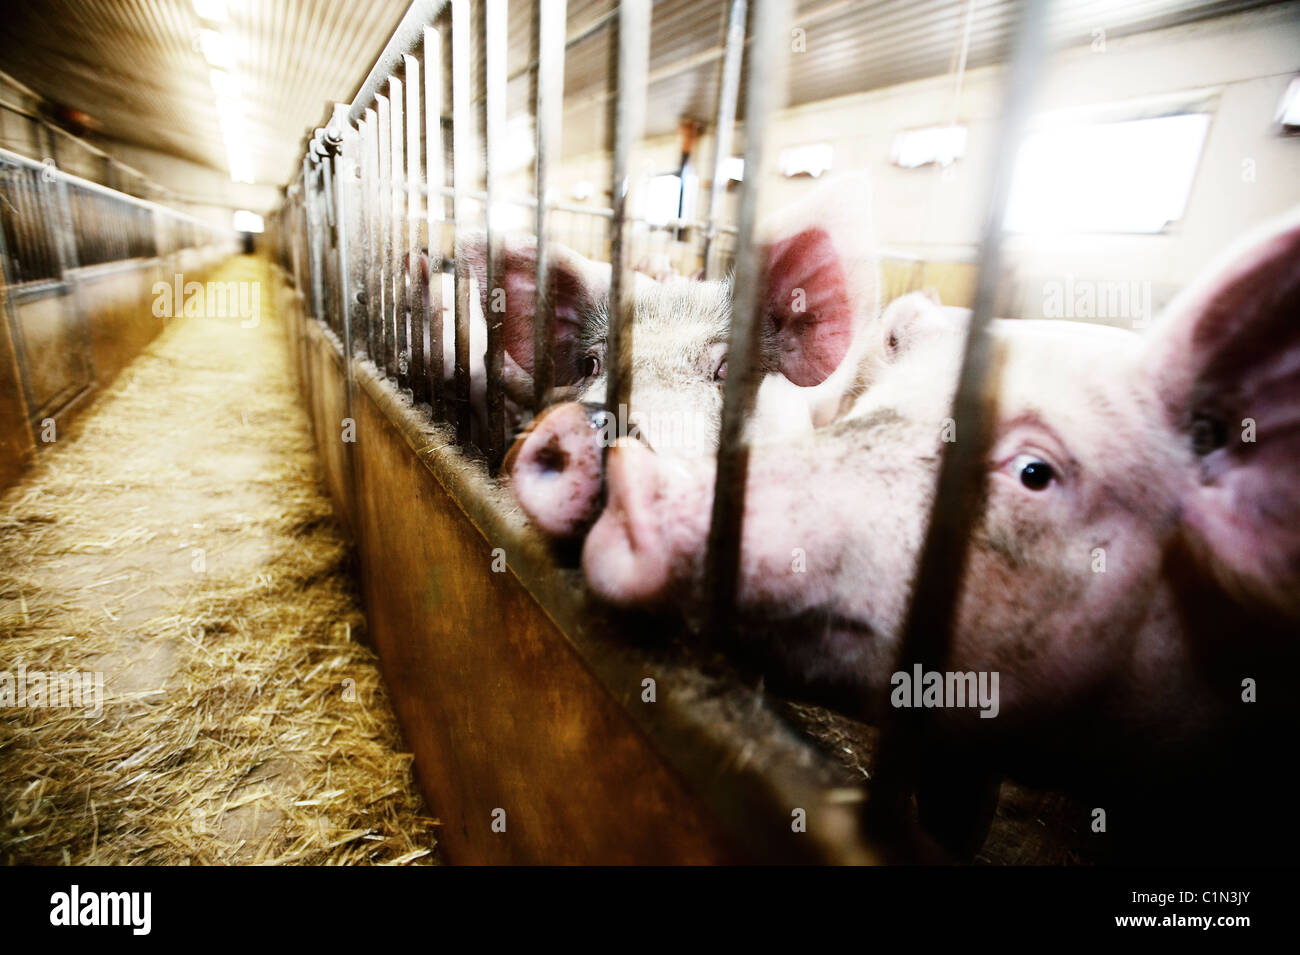 Pig farm with pigs in cages - Stock Image